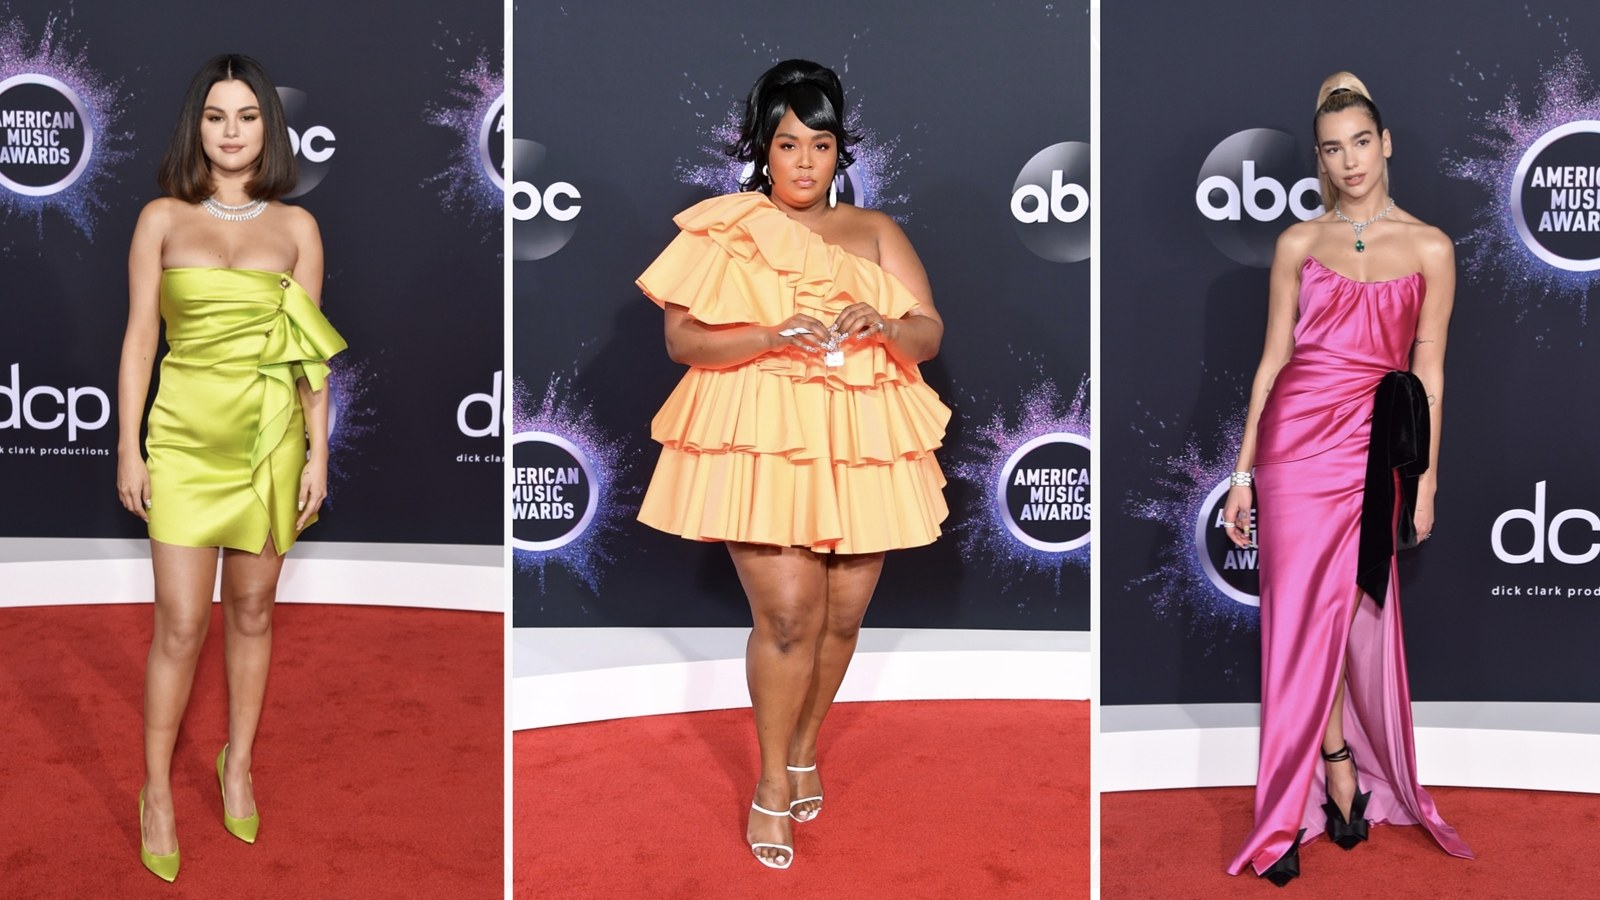 The Best Looks From the 2019 American Music Awards